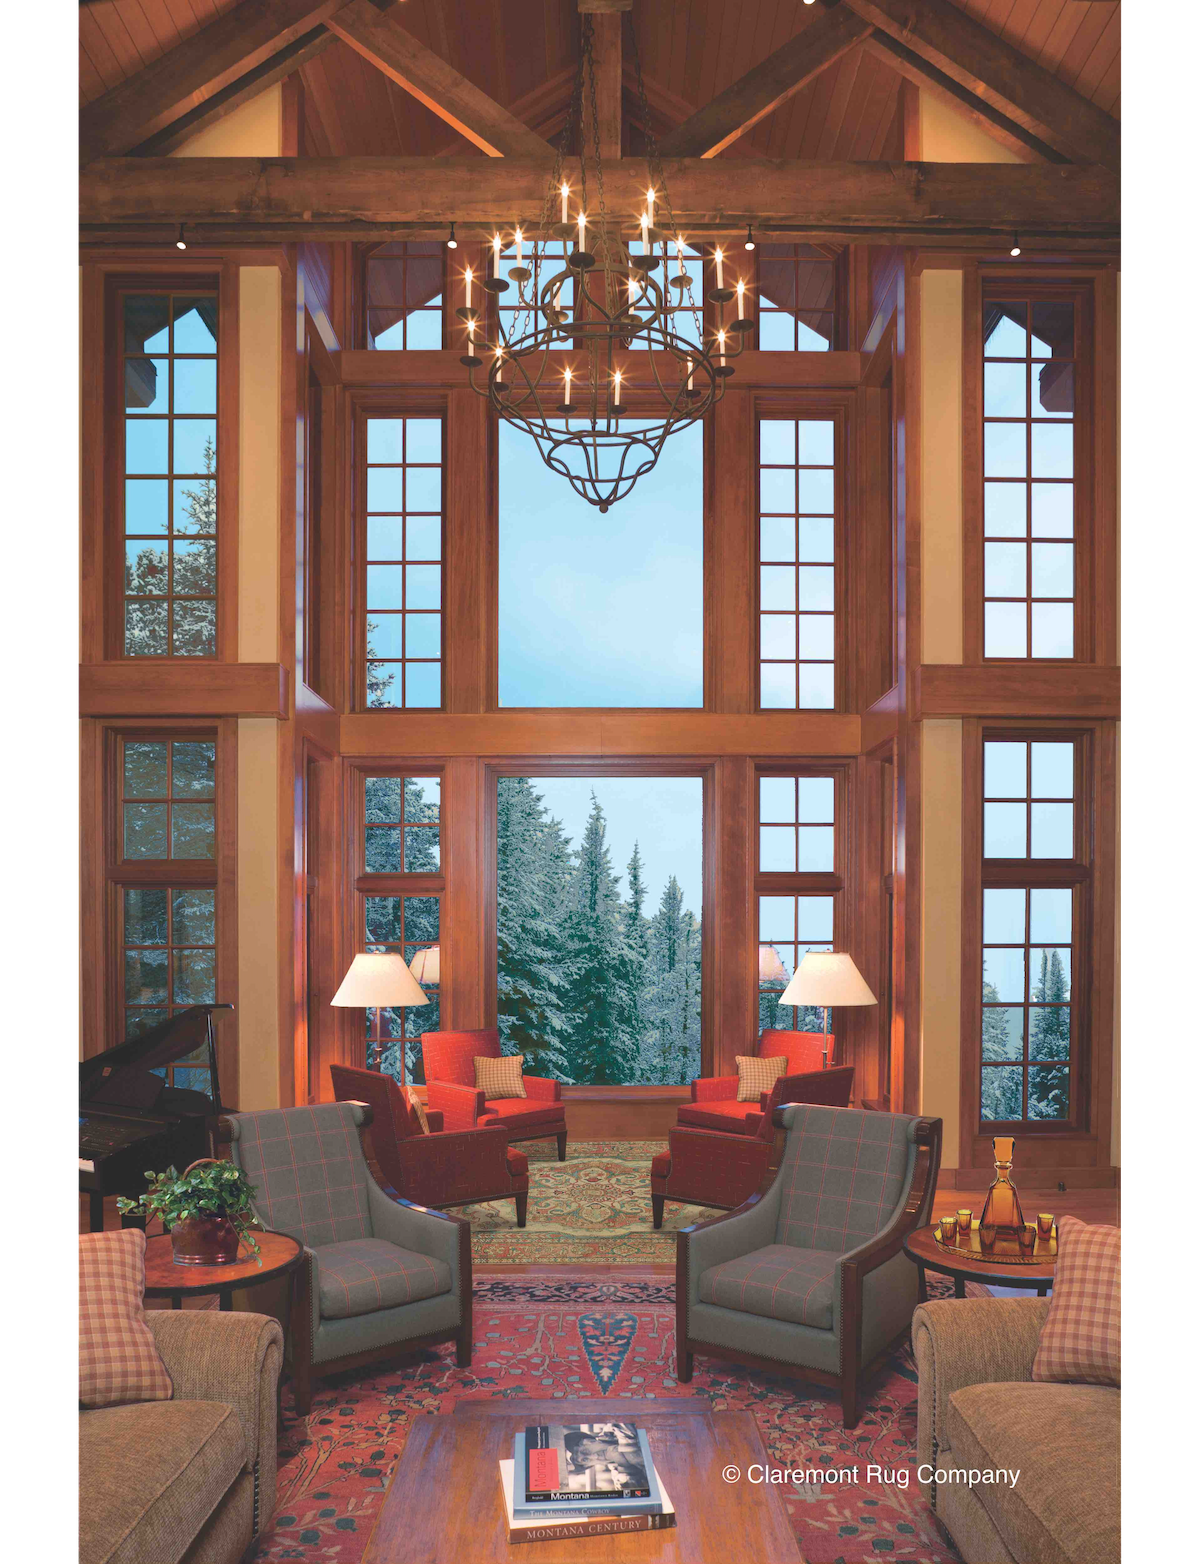 This vaulted Great Room with its spectacular view hosts two High-Collectible Persian antique carpets that add a stirring layer of sublime artistry to the gracious ambiance.